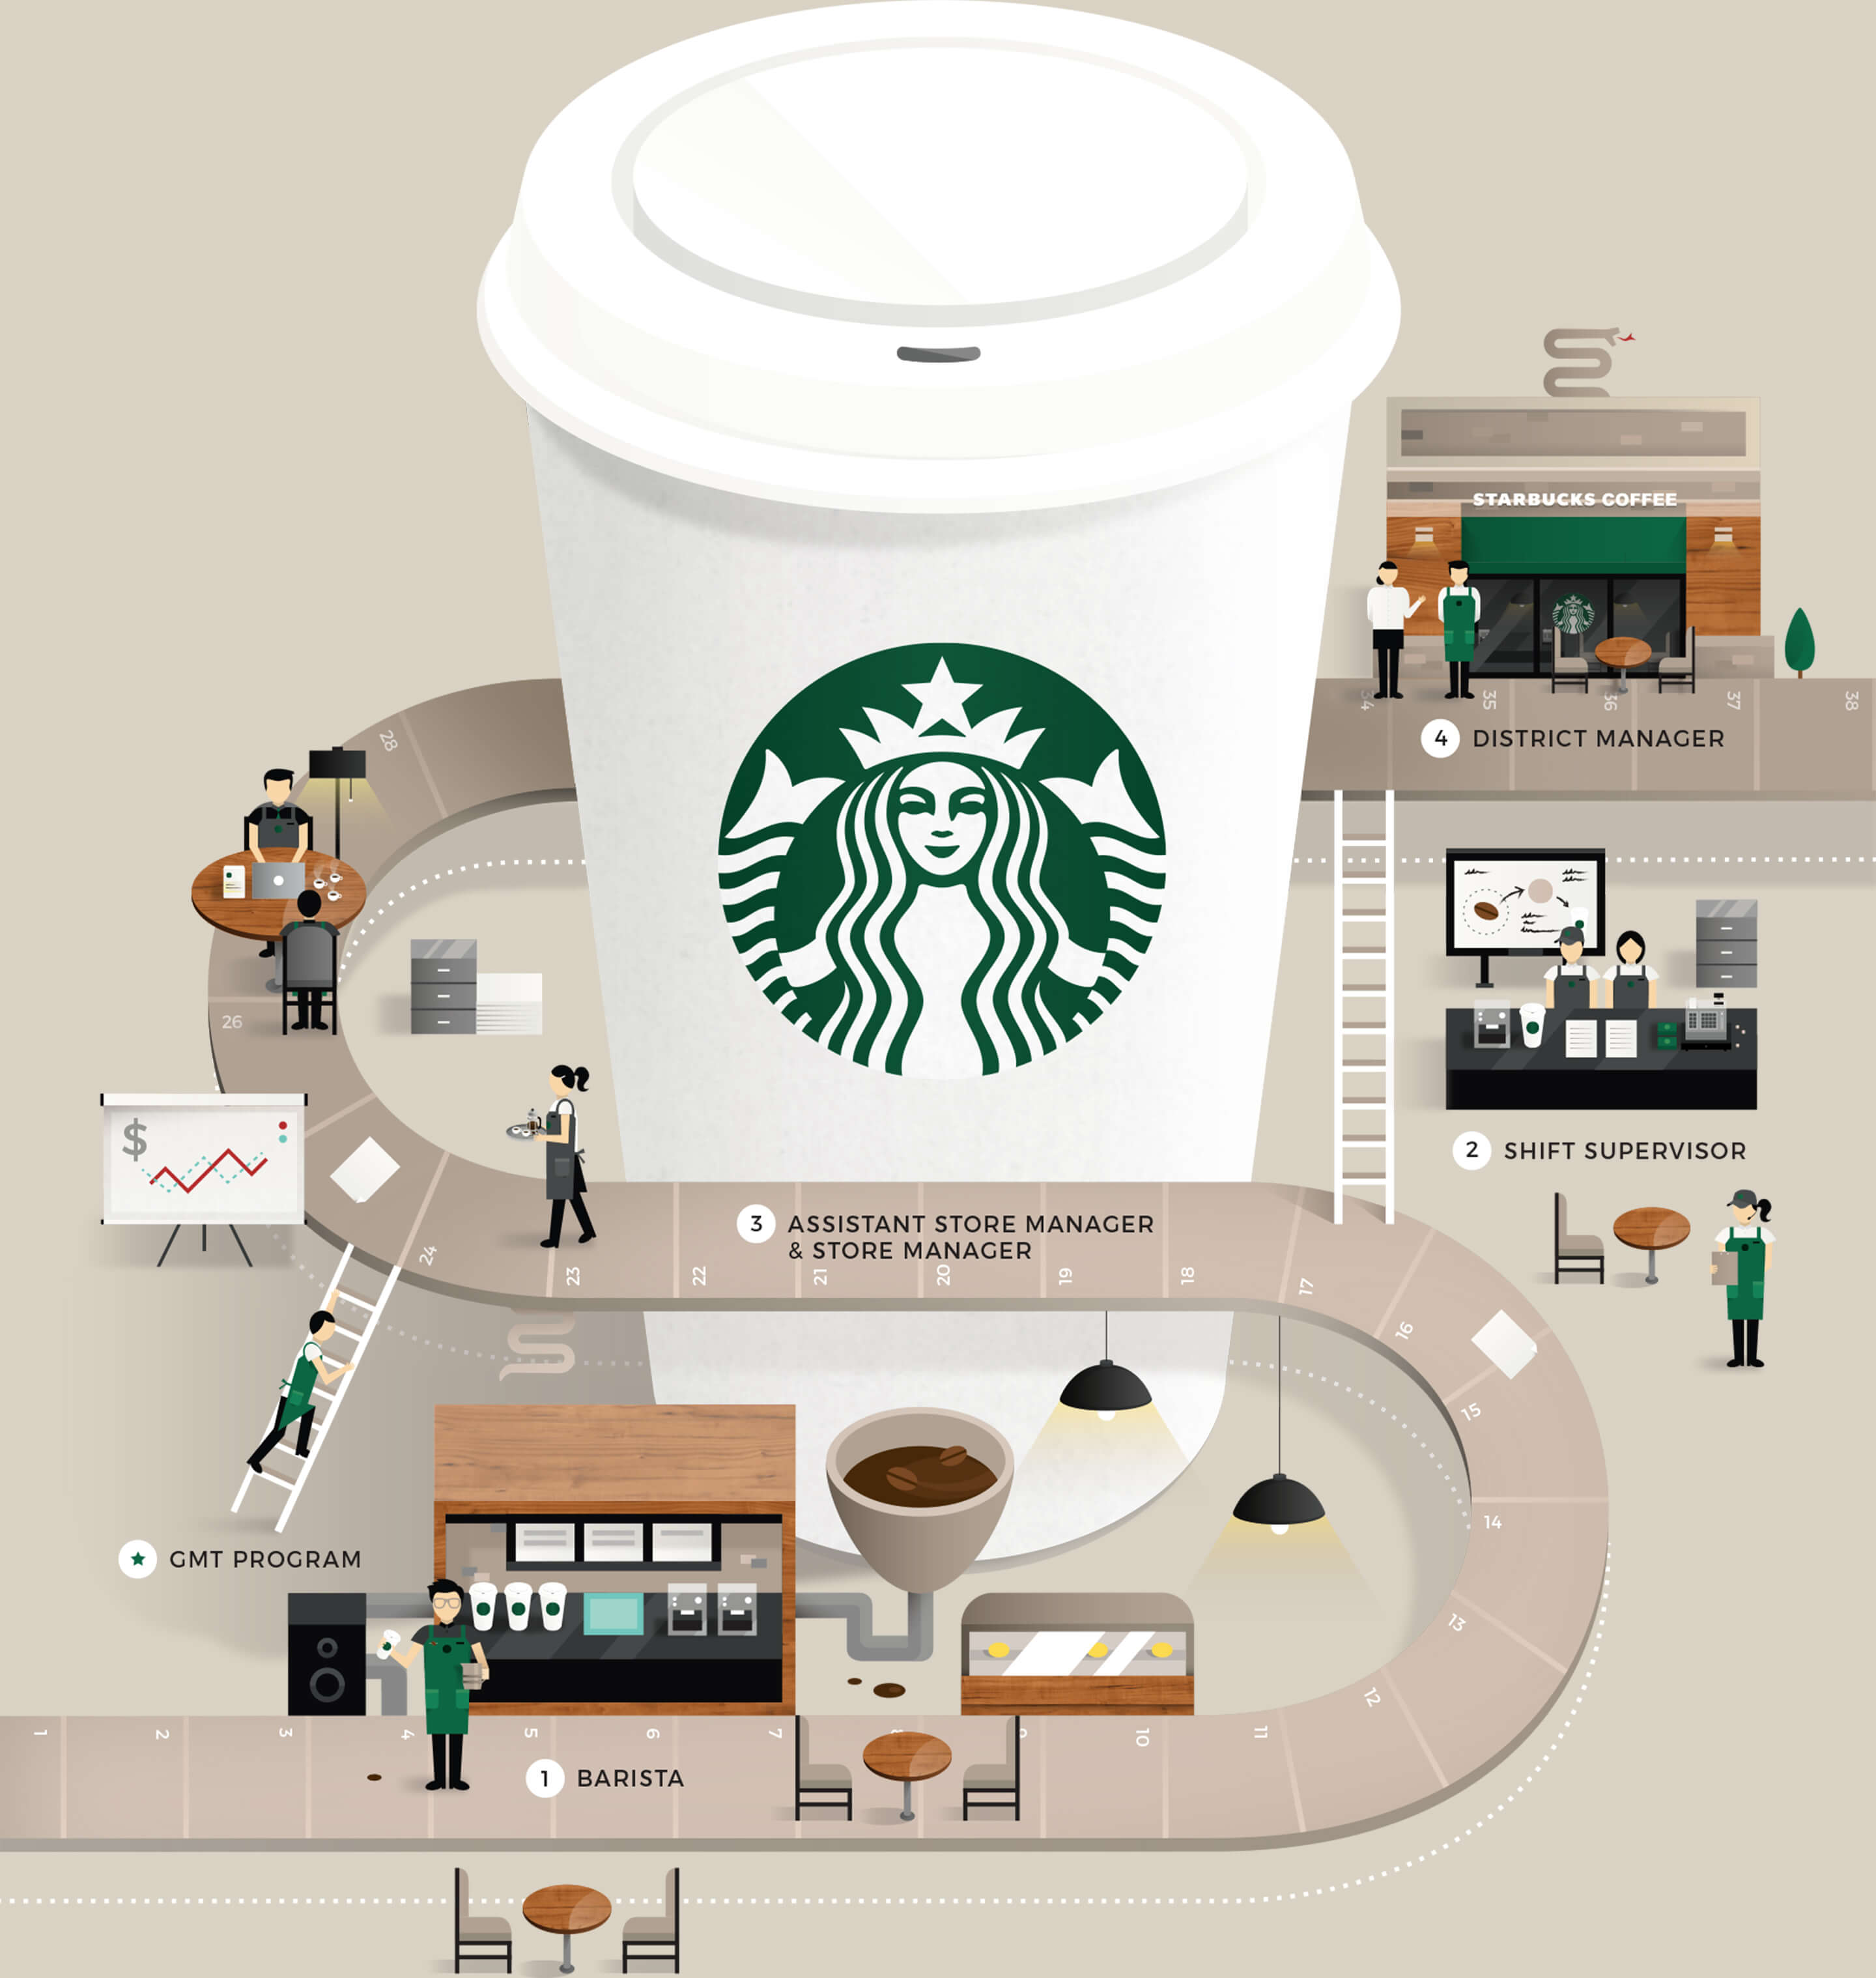 creative ways to recruit talents for Starbucks Singapore employer brand campaign